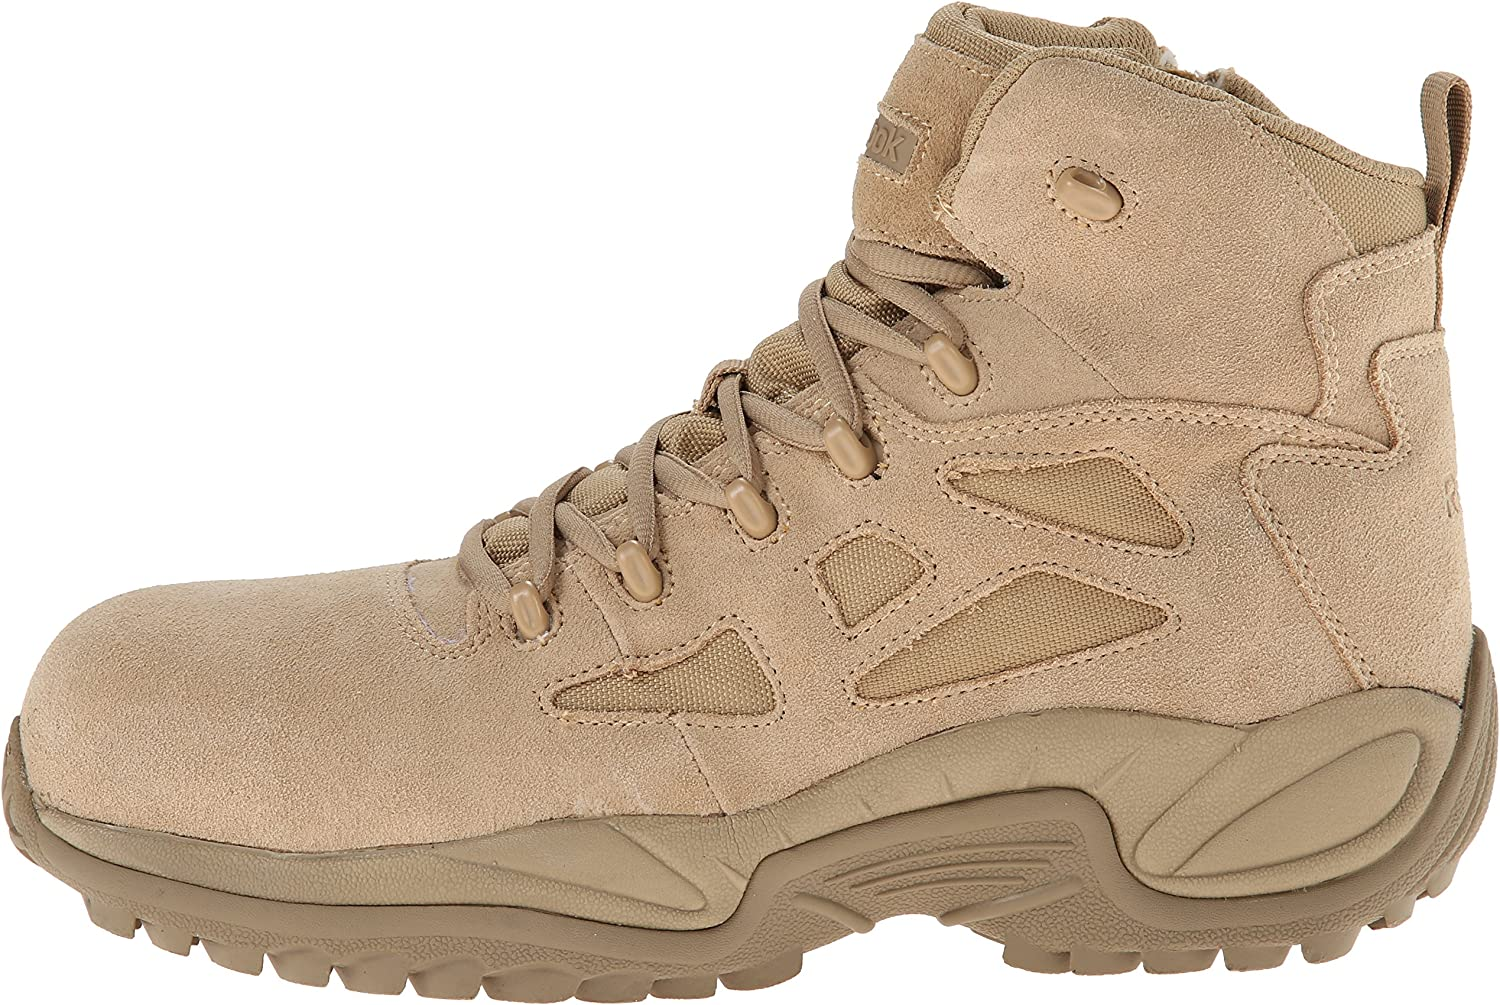 """Reebok Work Duty Men's Rapid Response RB RB8694 6"""" Tactical Boot: Shoes"""